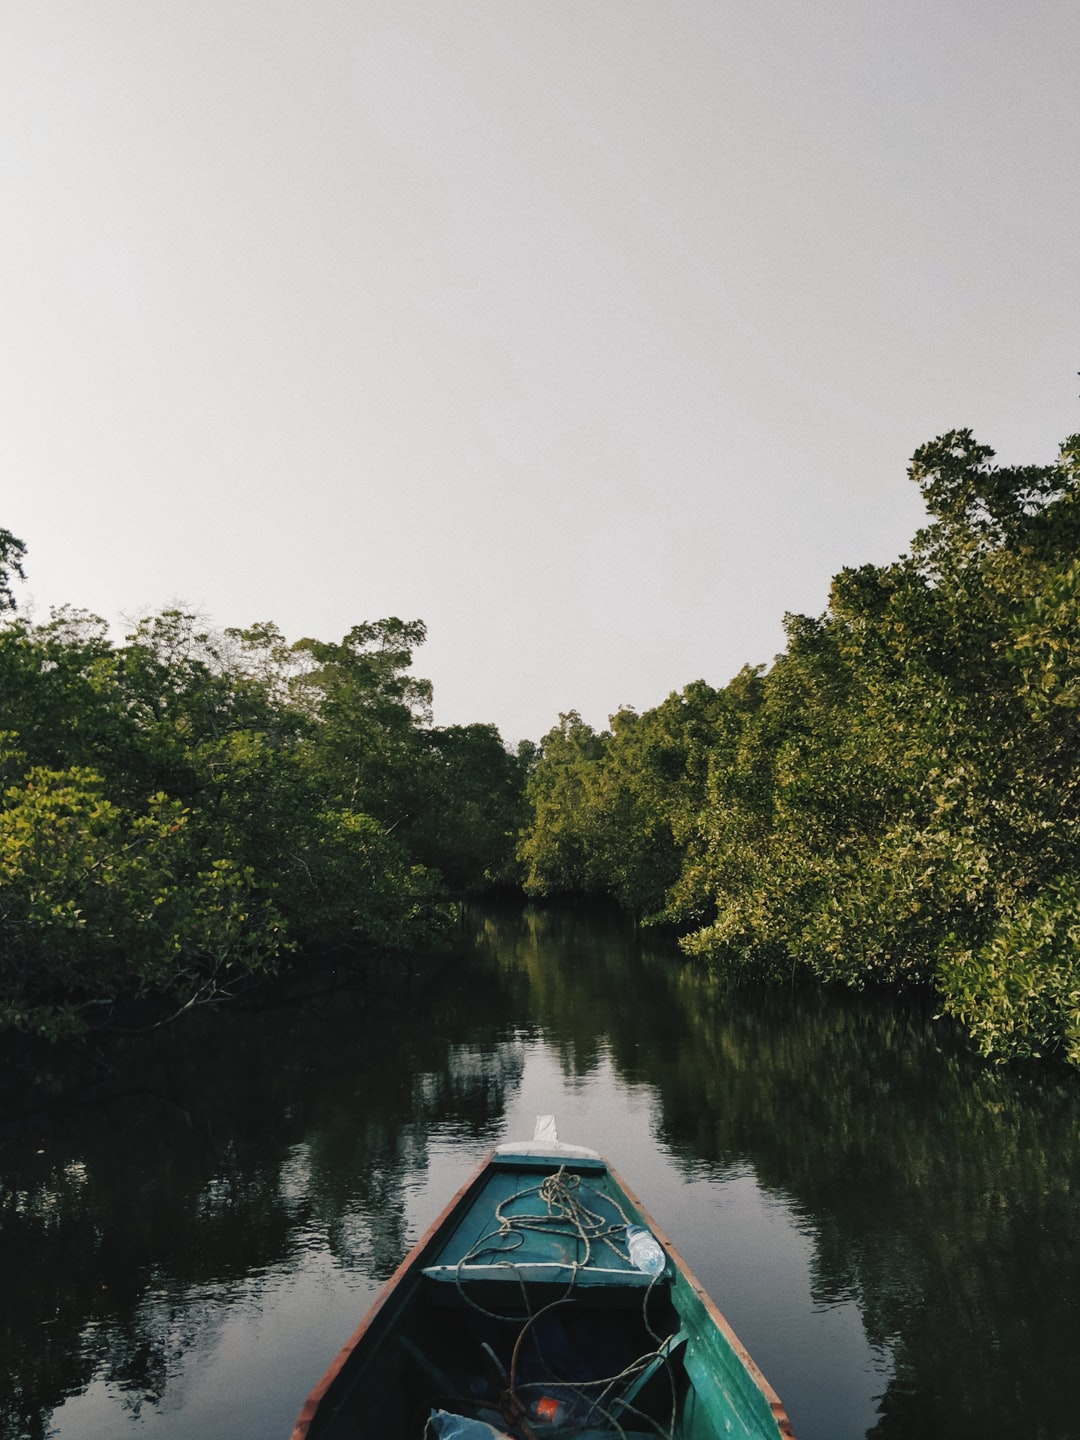 This shot was taken in the Sine Saloum delta in Senegal in early 2018. It represents the feeling of navigating your pirogue quietly through the mangroves – you are alone, surrounded by nothing but nature. The trees in mangrove forests are always submerged in the salty water, resulting in a unique ecosystem. There was no sound, apart from the sound of oysters opening and closing their shell. A truly unique and magical experience.